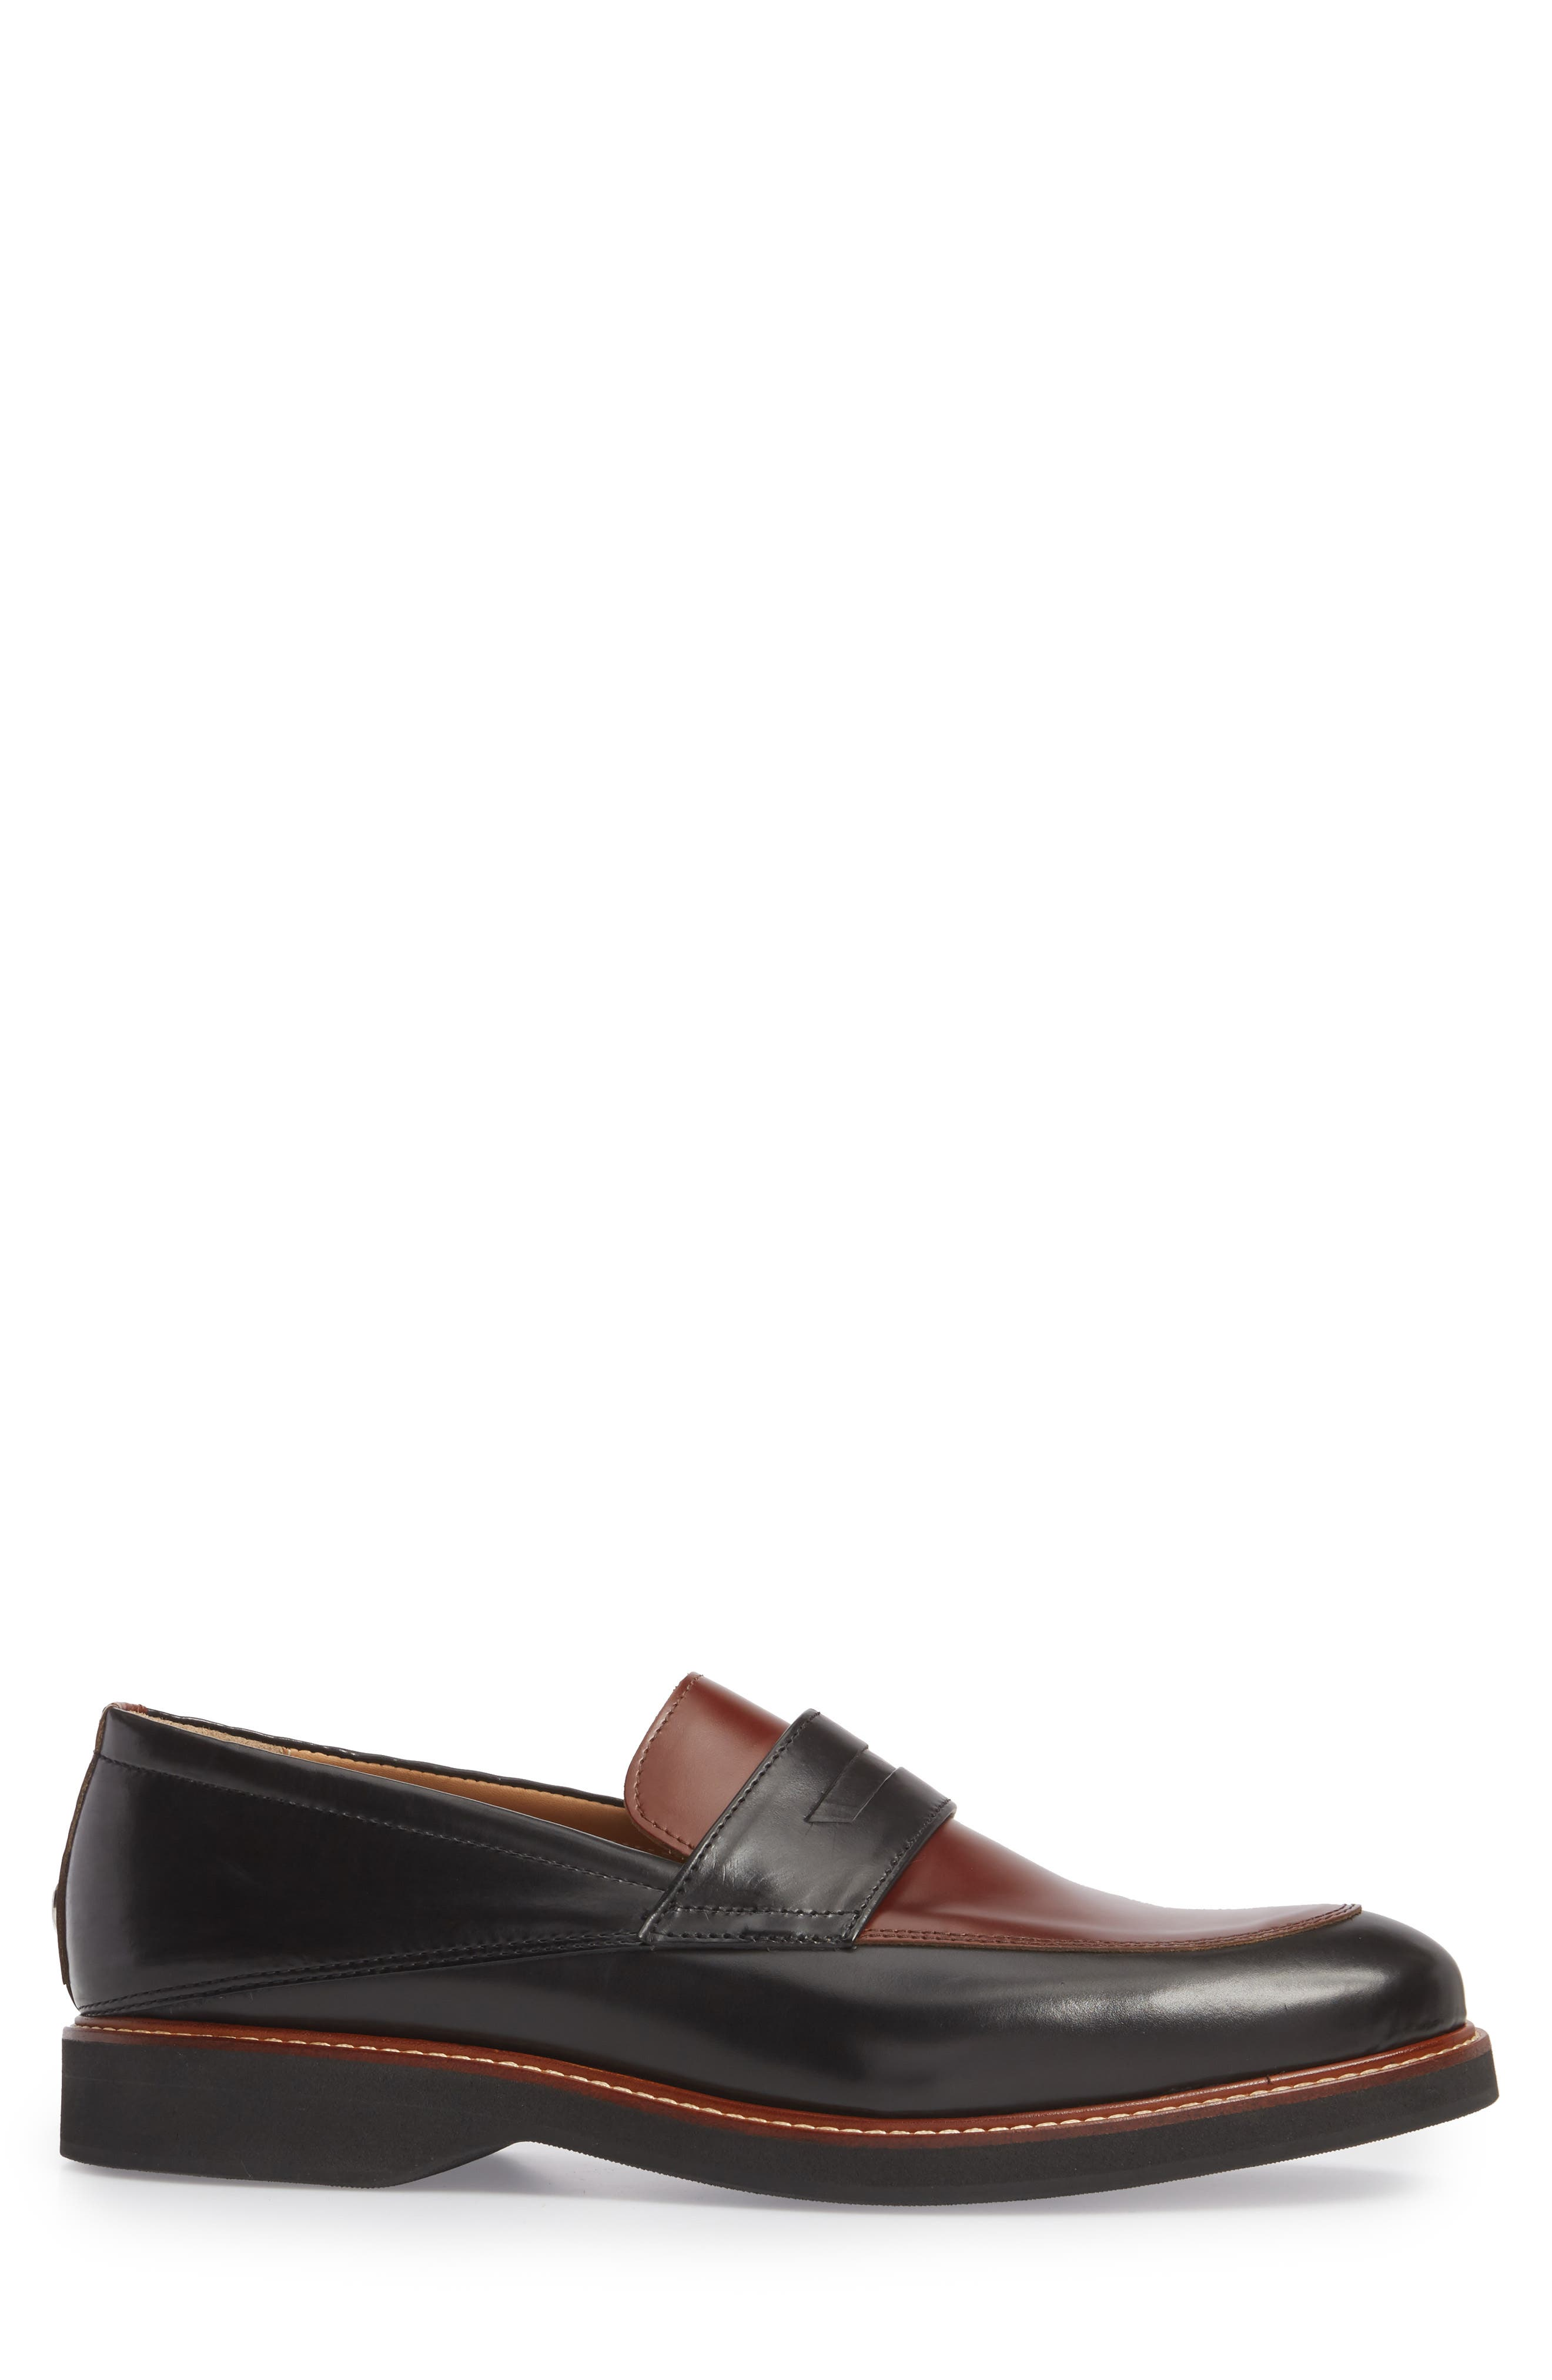 Marcus Penny Loafer,                             Alternate thumbnail 3, color,                             010